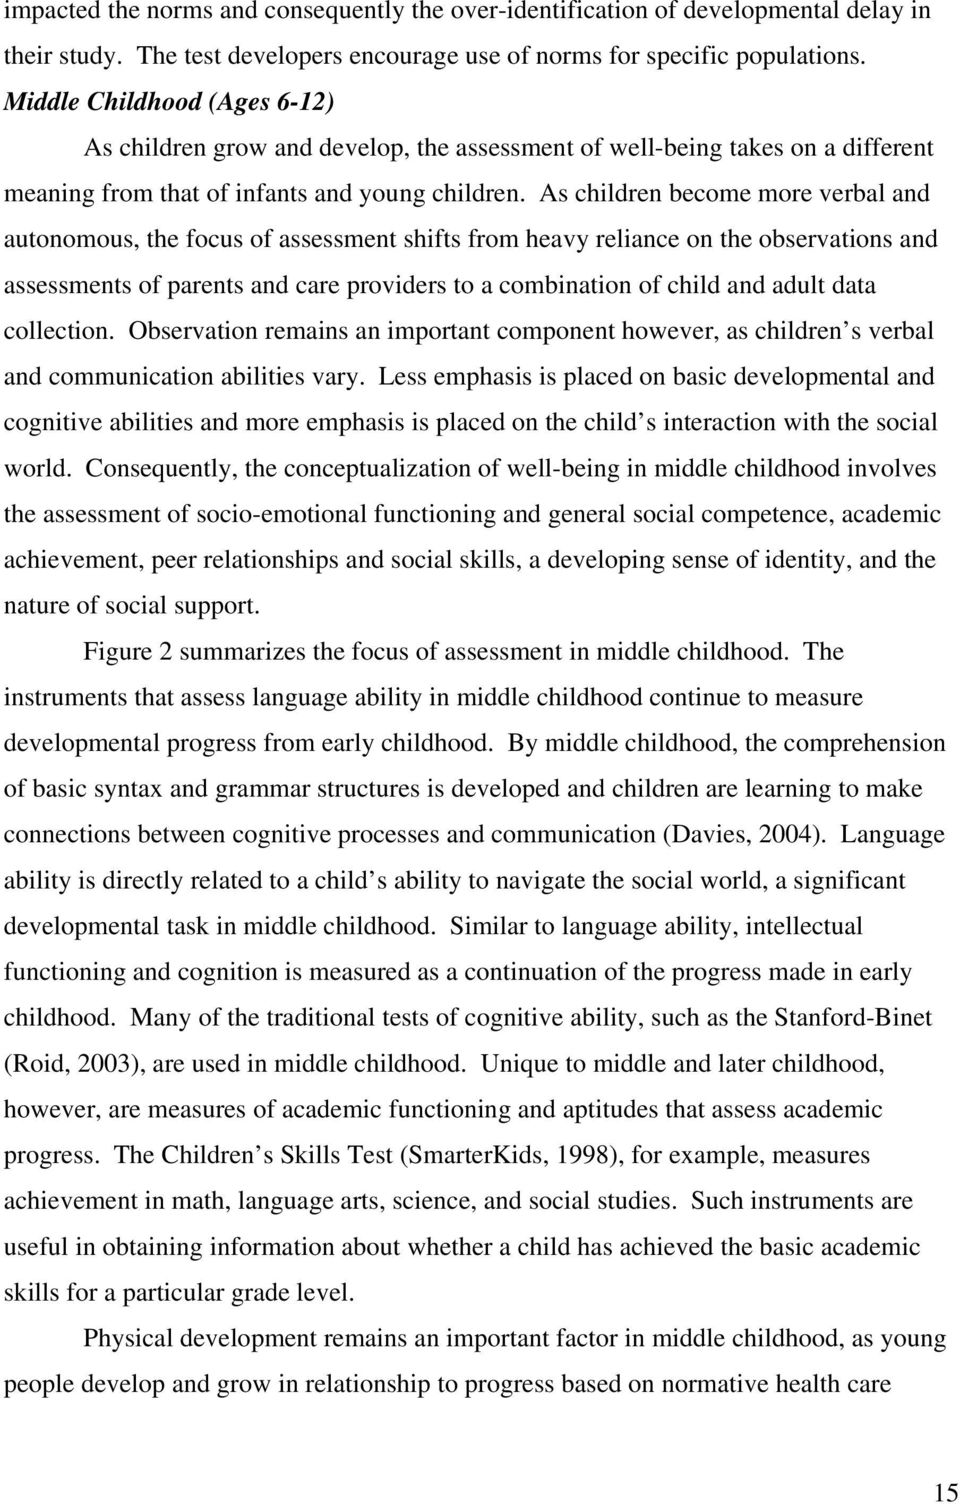 As children become more verbal and autonomous, the focus of assessment shifts from heavy reliance on the observations and assessments of parents and care providers to a combination of child and adult